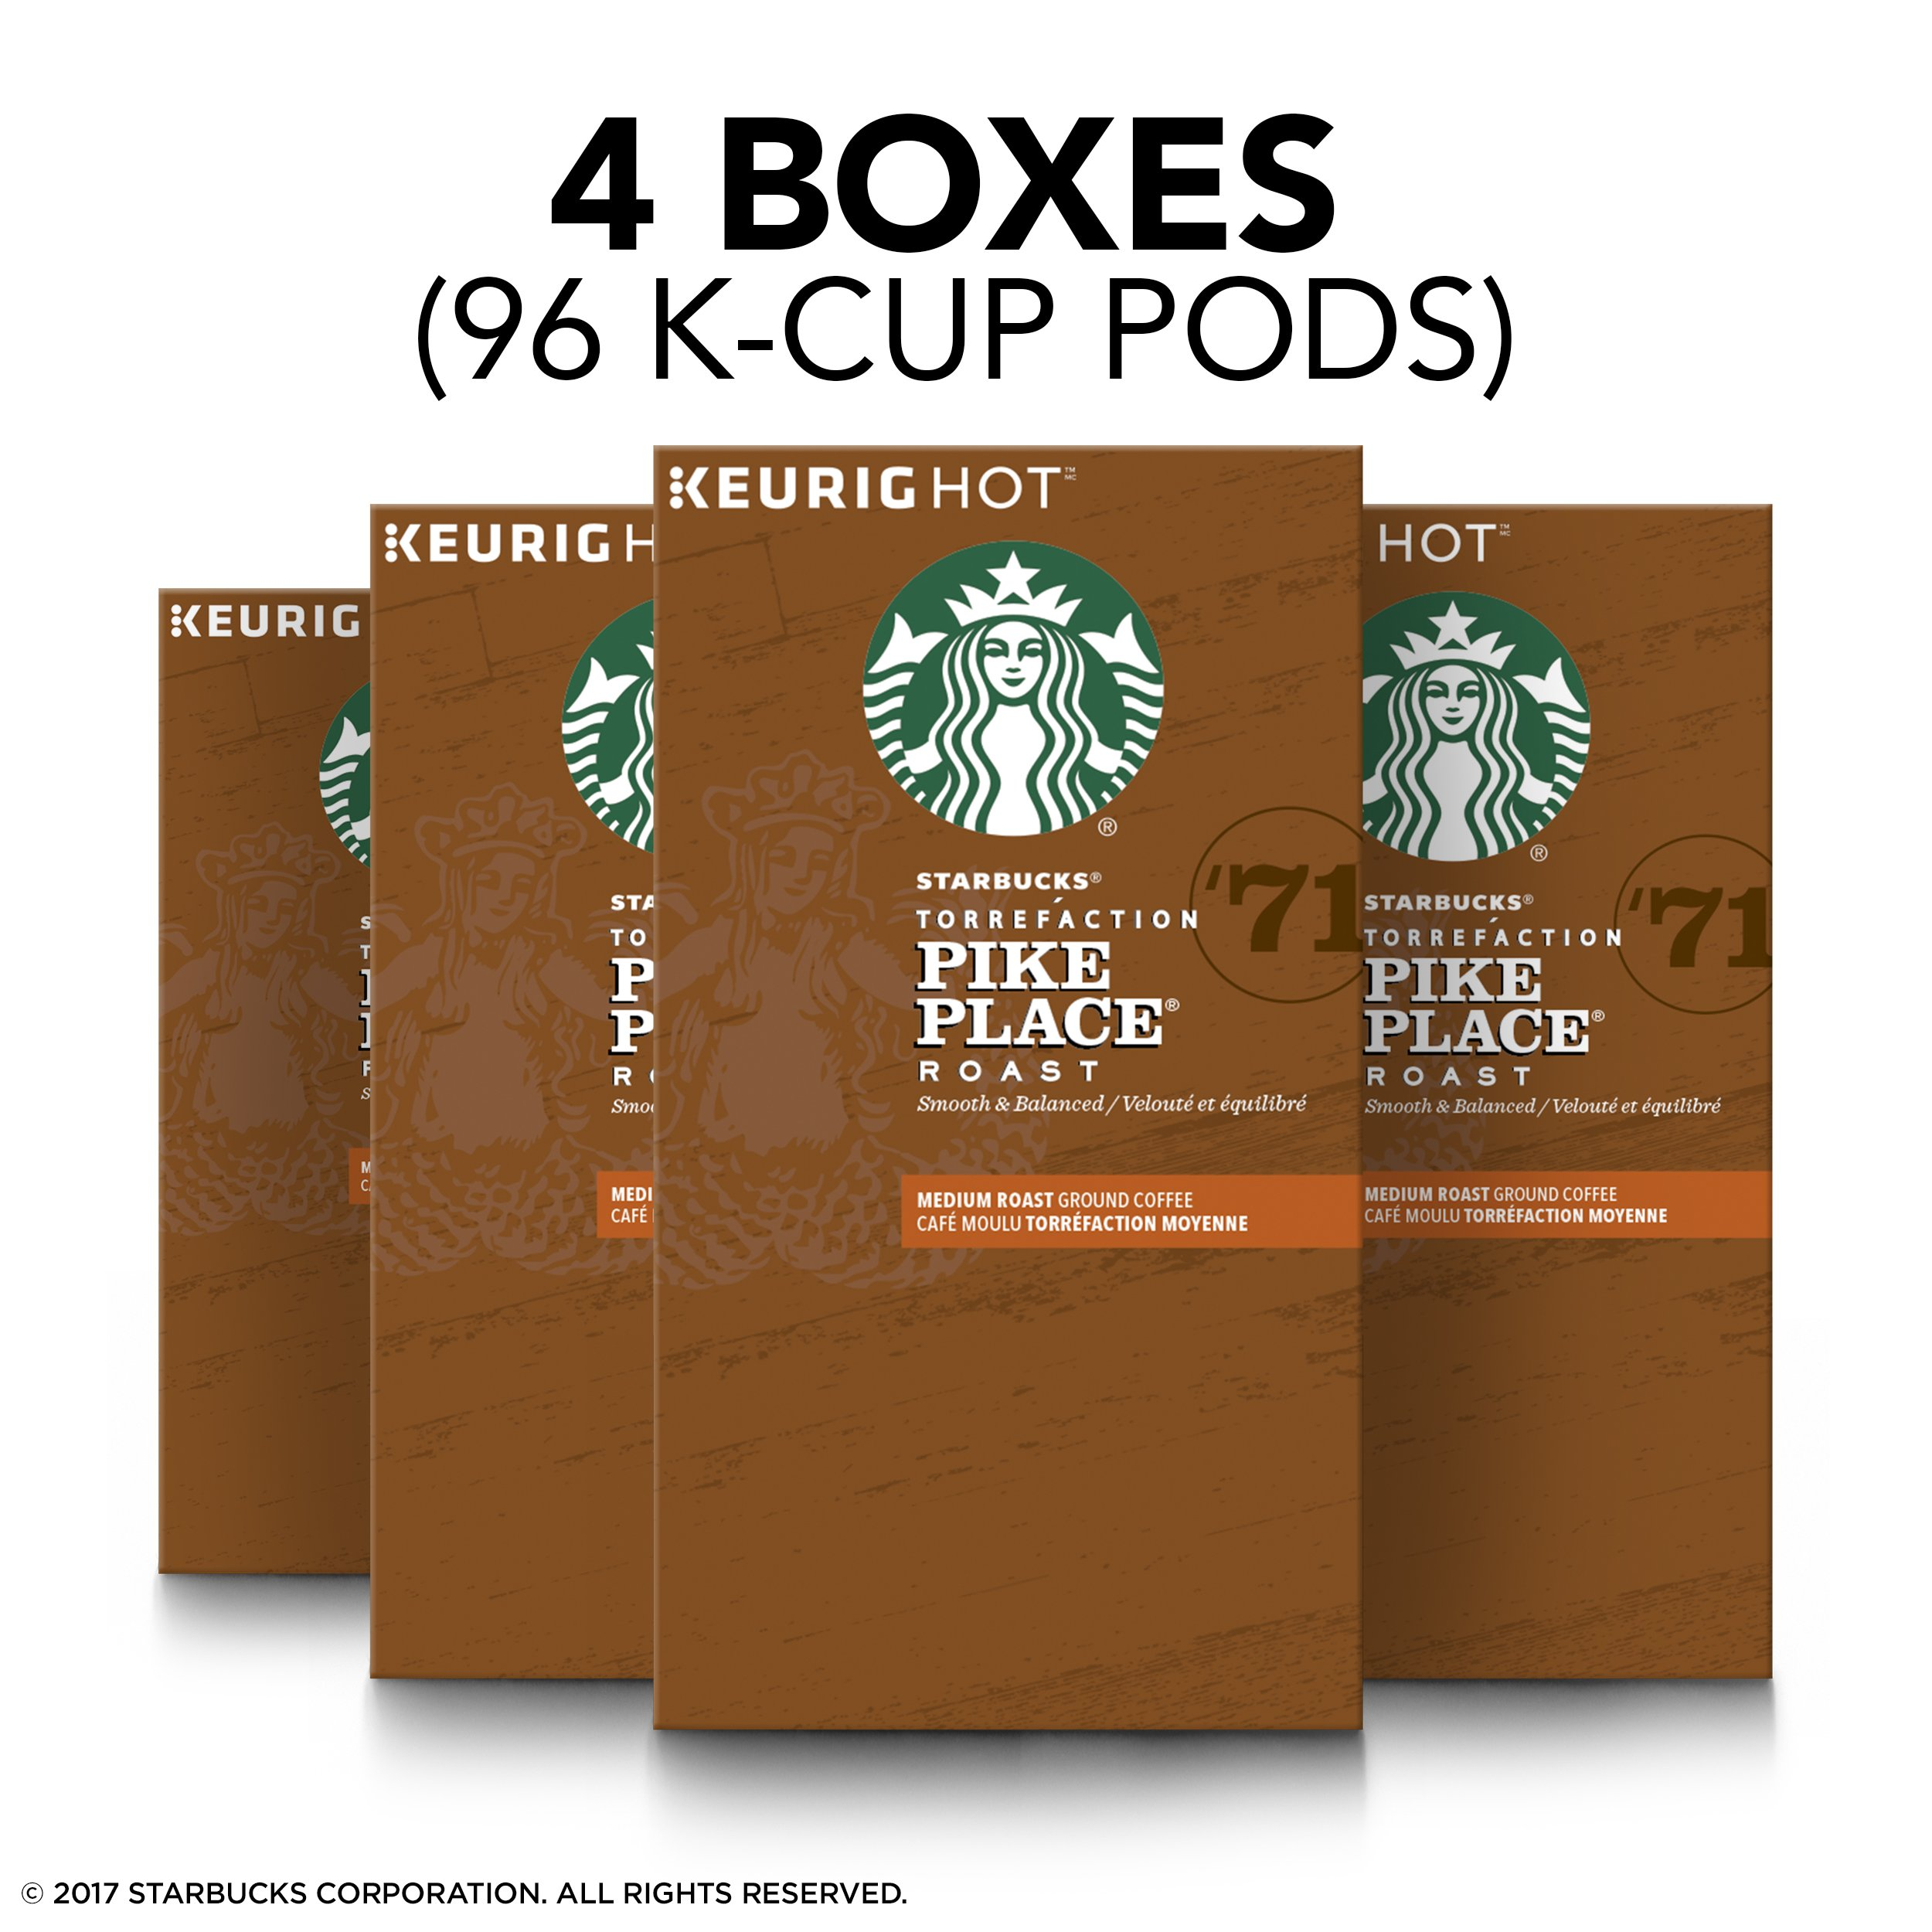 Starbucks Pike Place Roast Medium Roast Single Cup Coffee for Keurig Brewers, 4 boxes of 24 (96 total K-Cup pods) by Starbucks (Image #7)